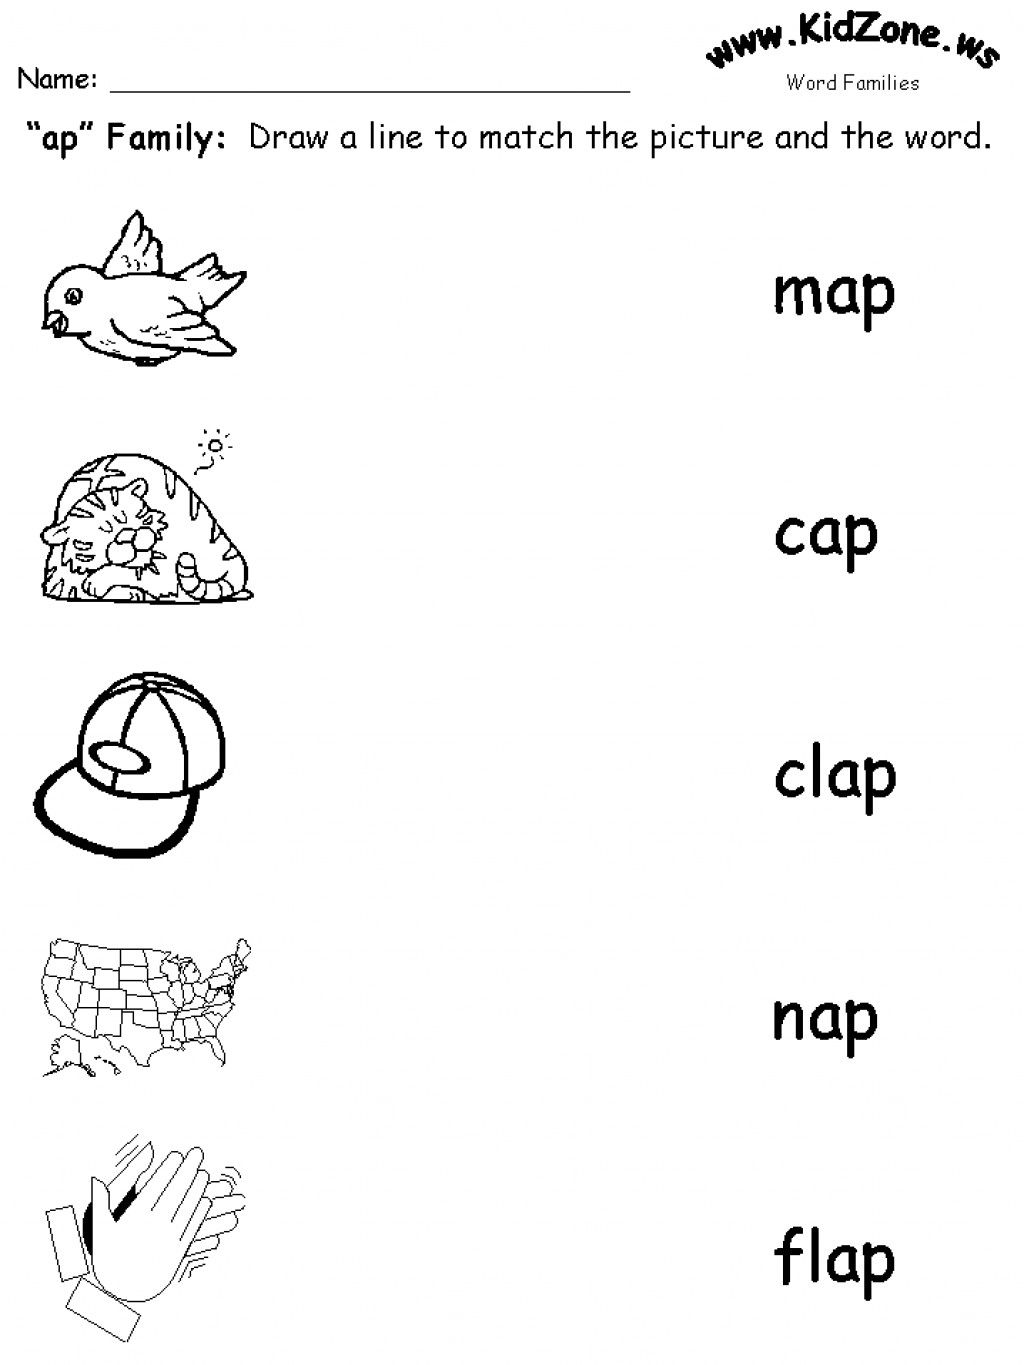 Teaching Word Families With Images